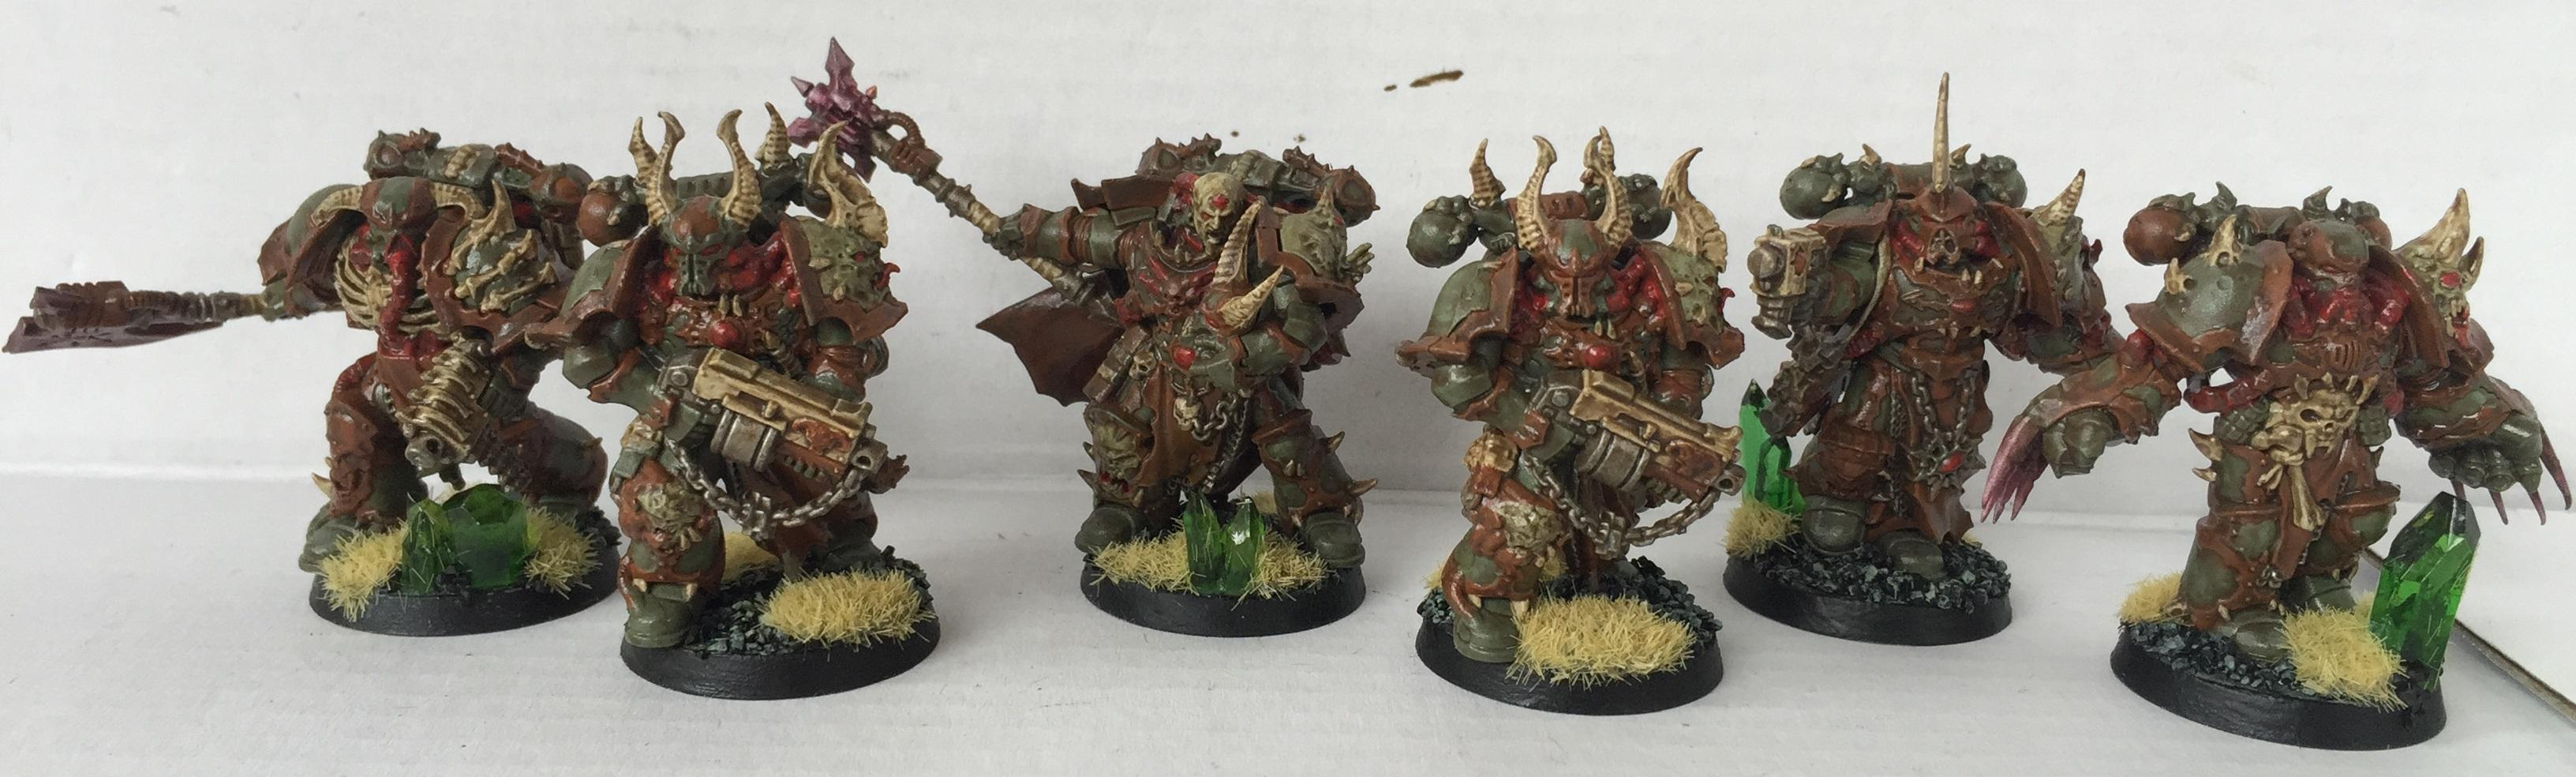 Chaos, Chaos Space Marines, Chosen, Dipped, Nurgle, Petrifications, Warhammer 40,000, Washed